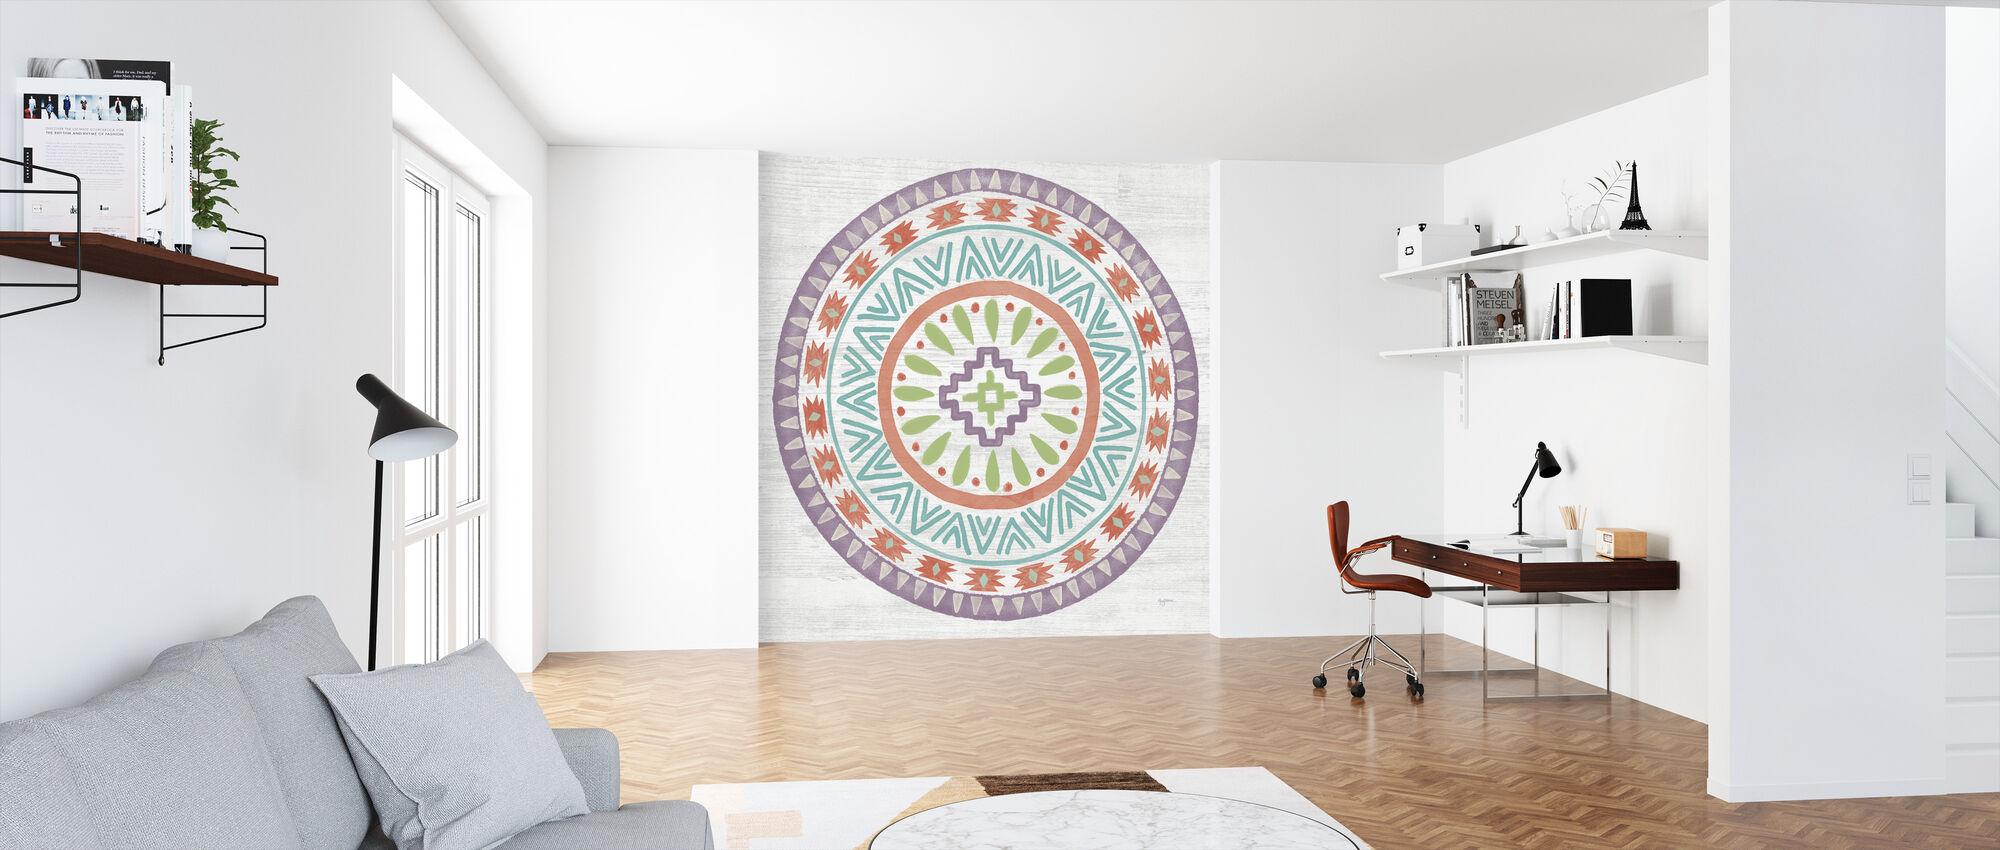 Lovely Llamas Mandala - Wallpaper - Office